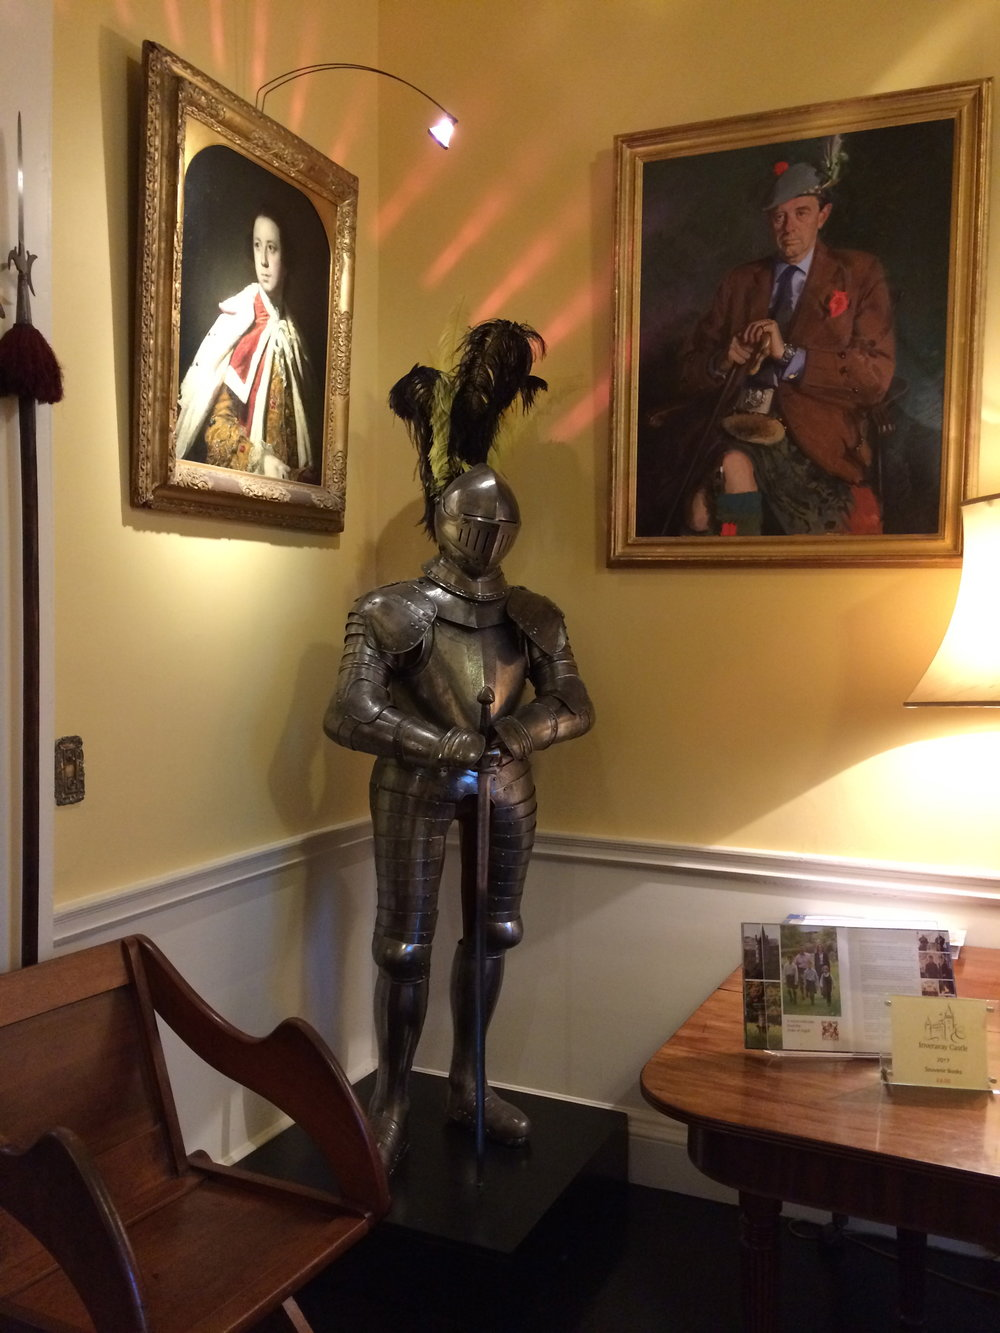 Suit of armor at Inverary Castle, Scotland